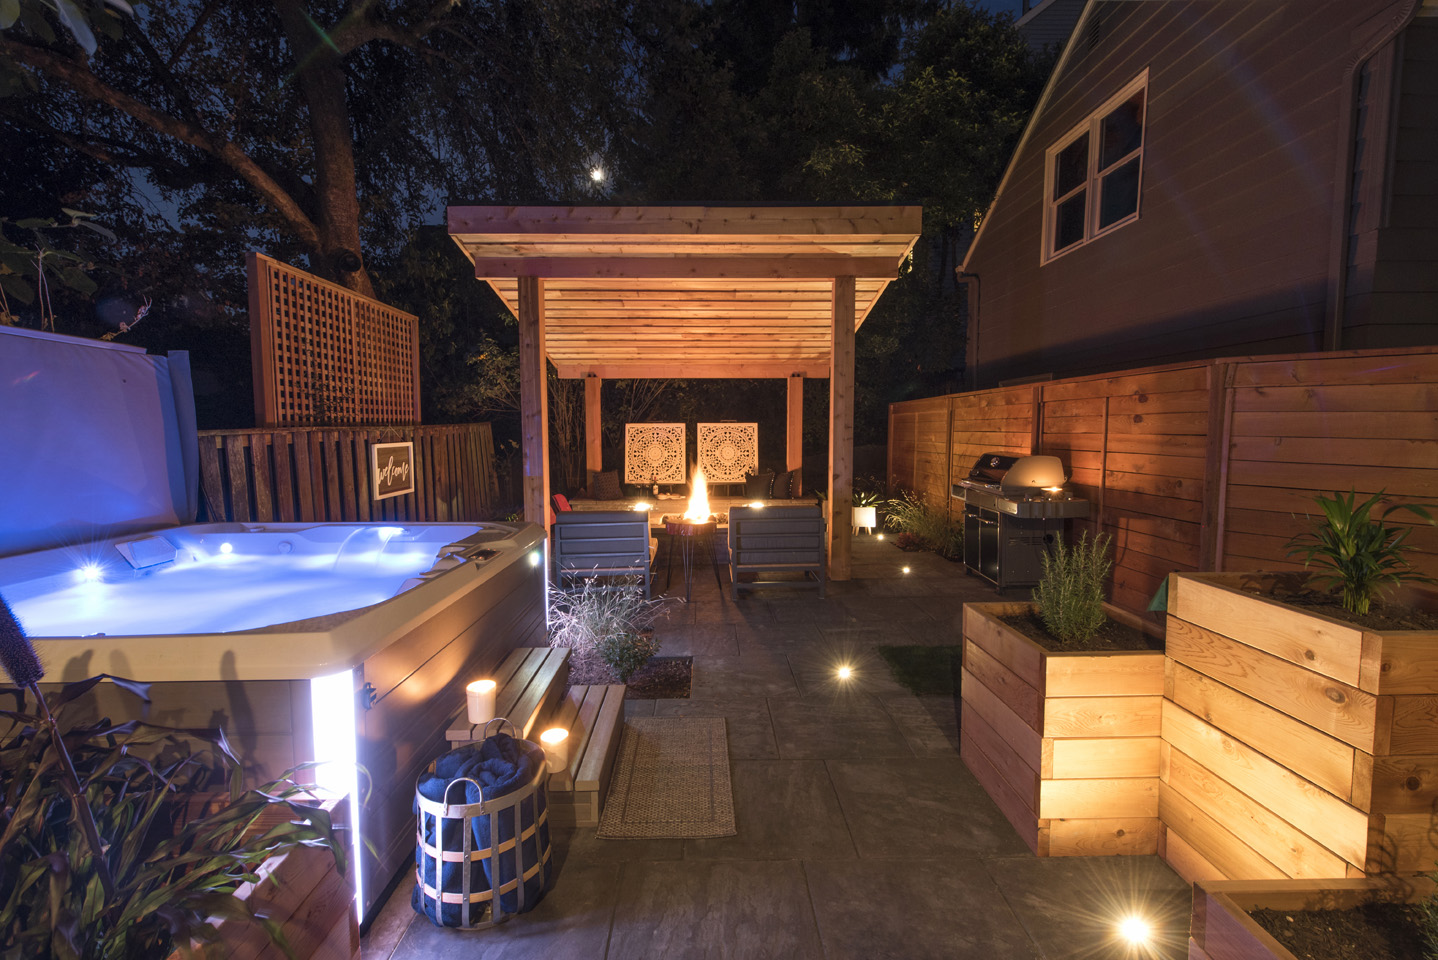 Hot Tub in Outdoor Living Area